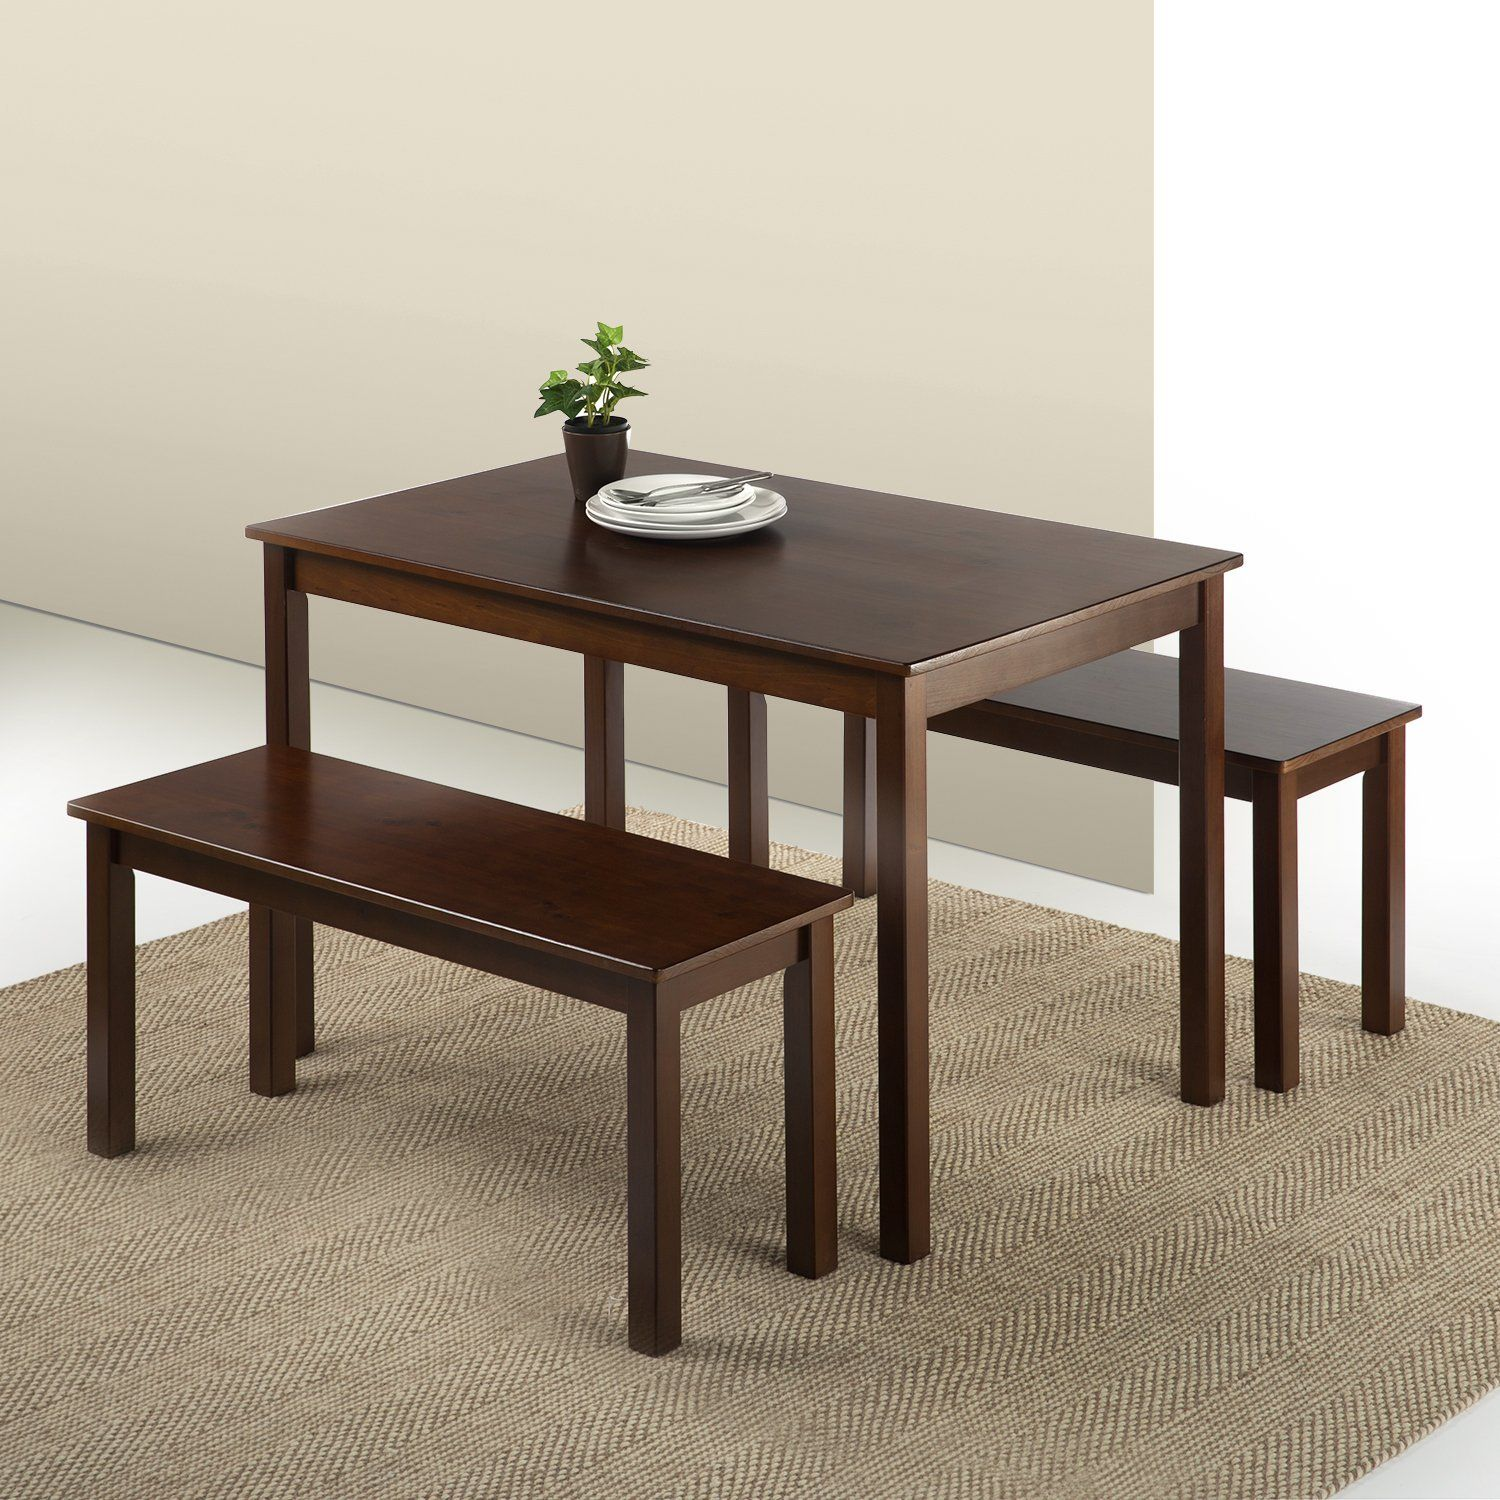 20 coffee tables with seating underneath dining set with